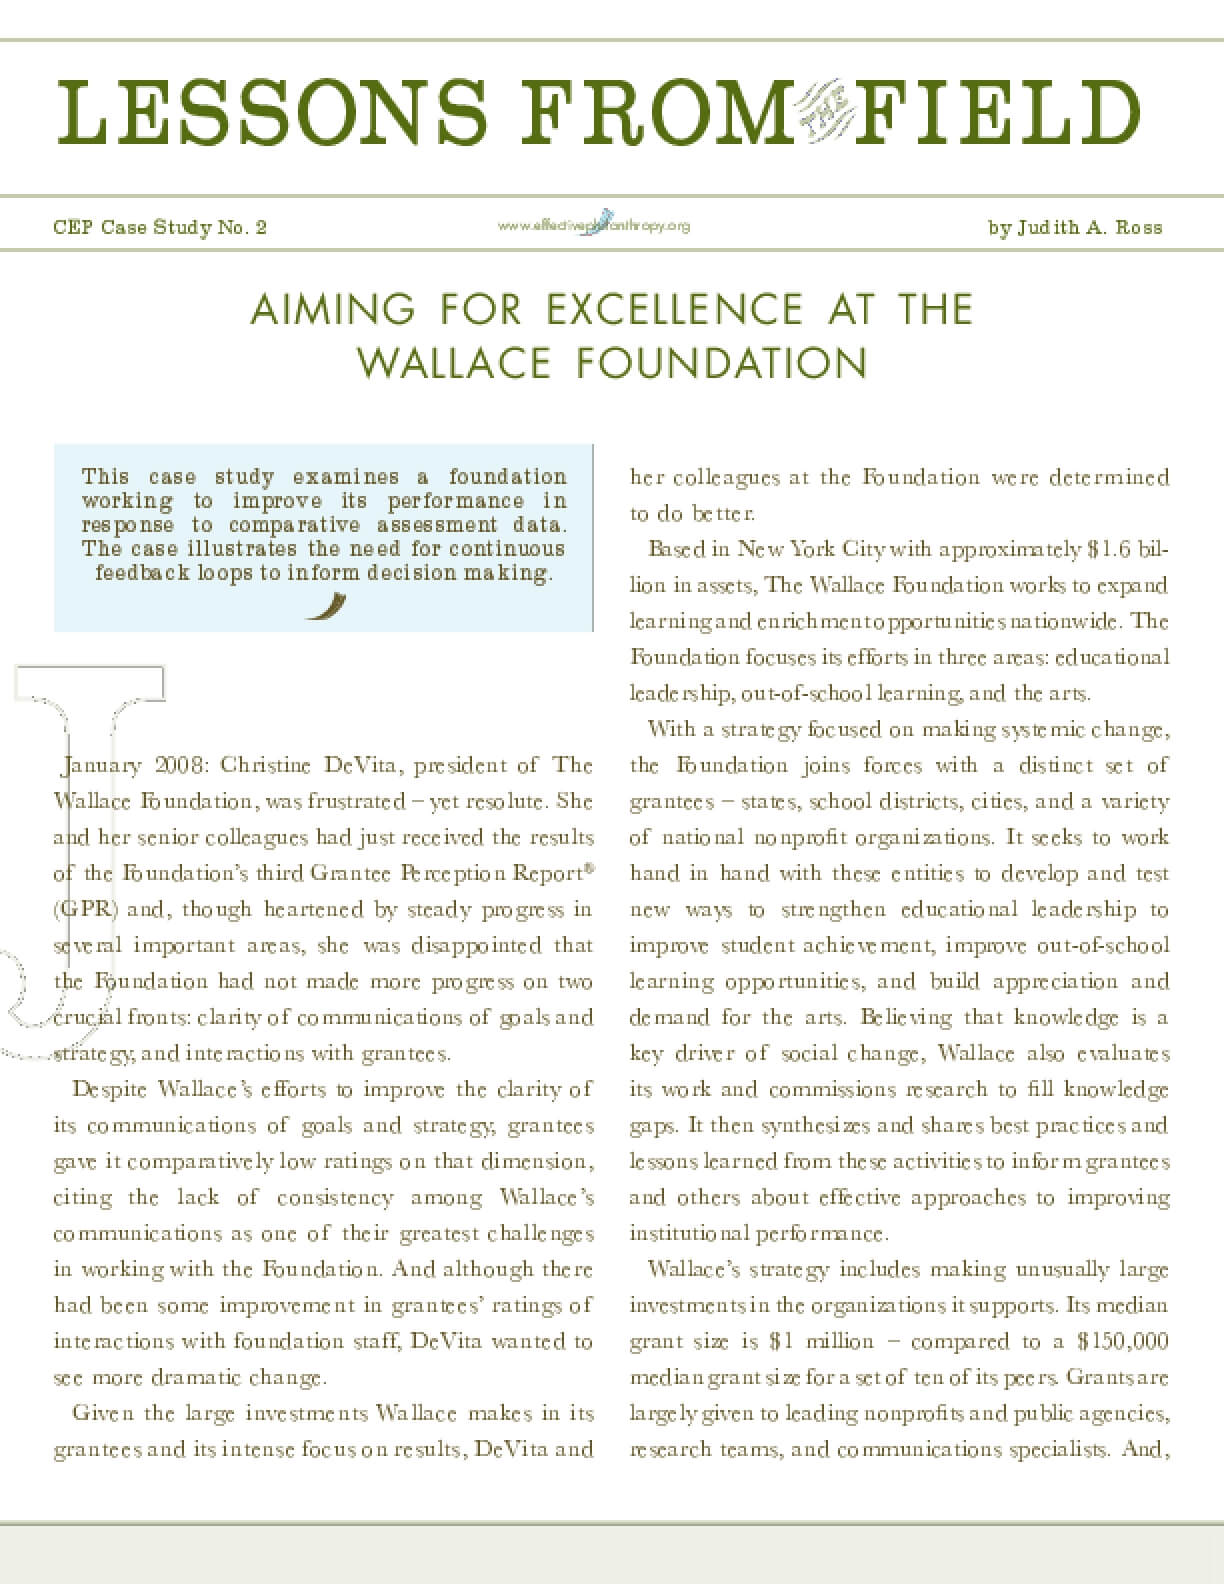 Lessons From the Field: Aiming for Excellence At the Wallace Foundation